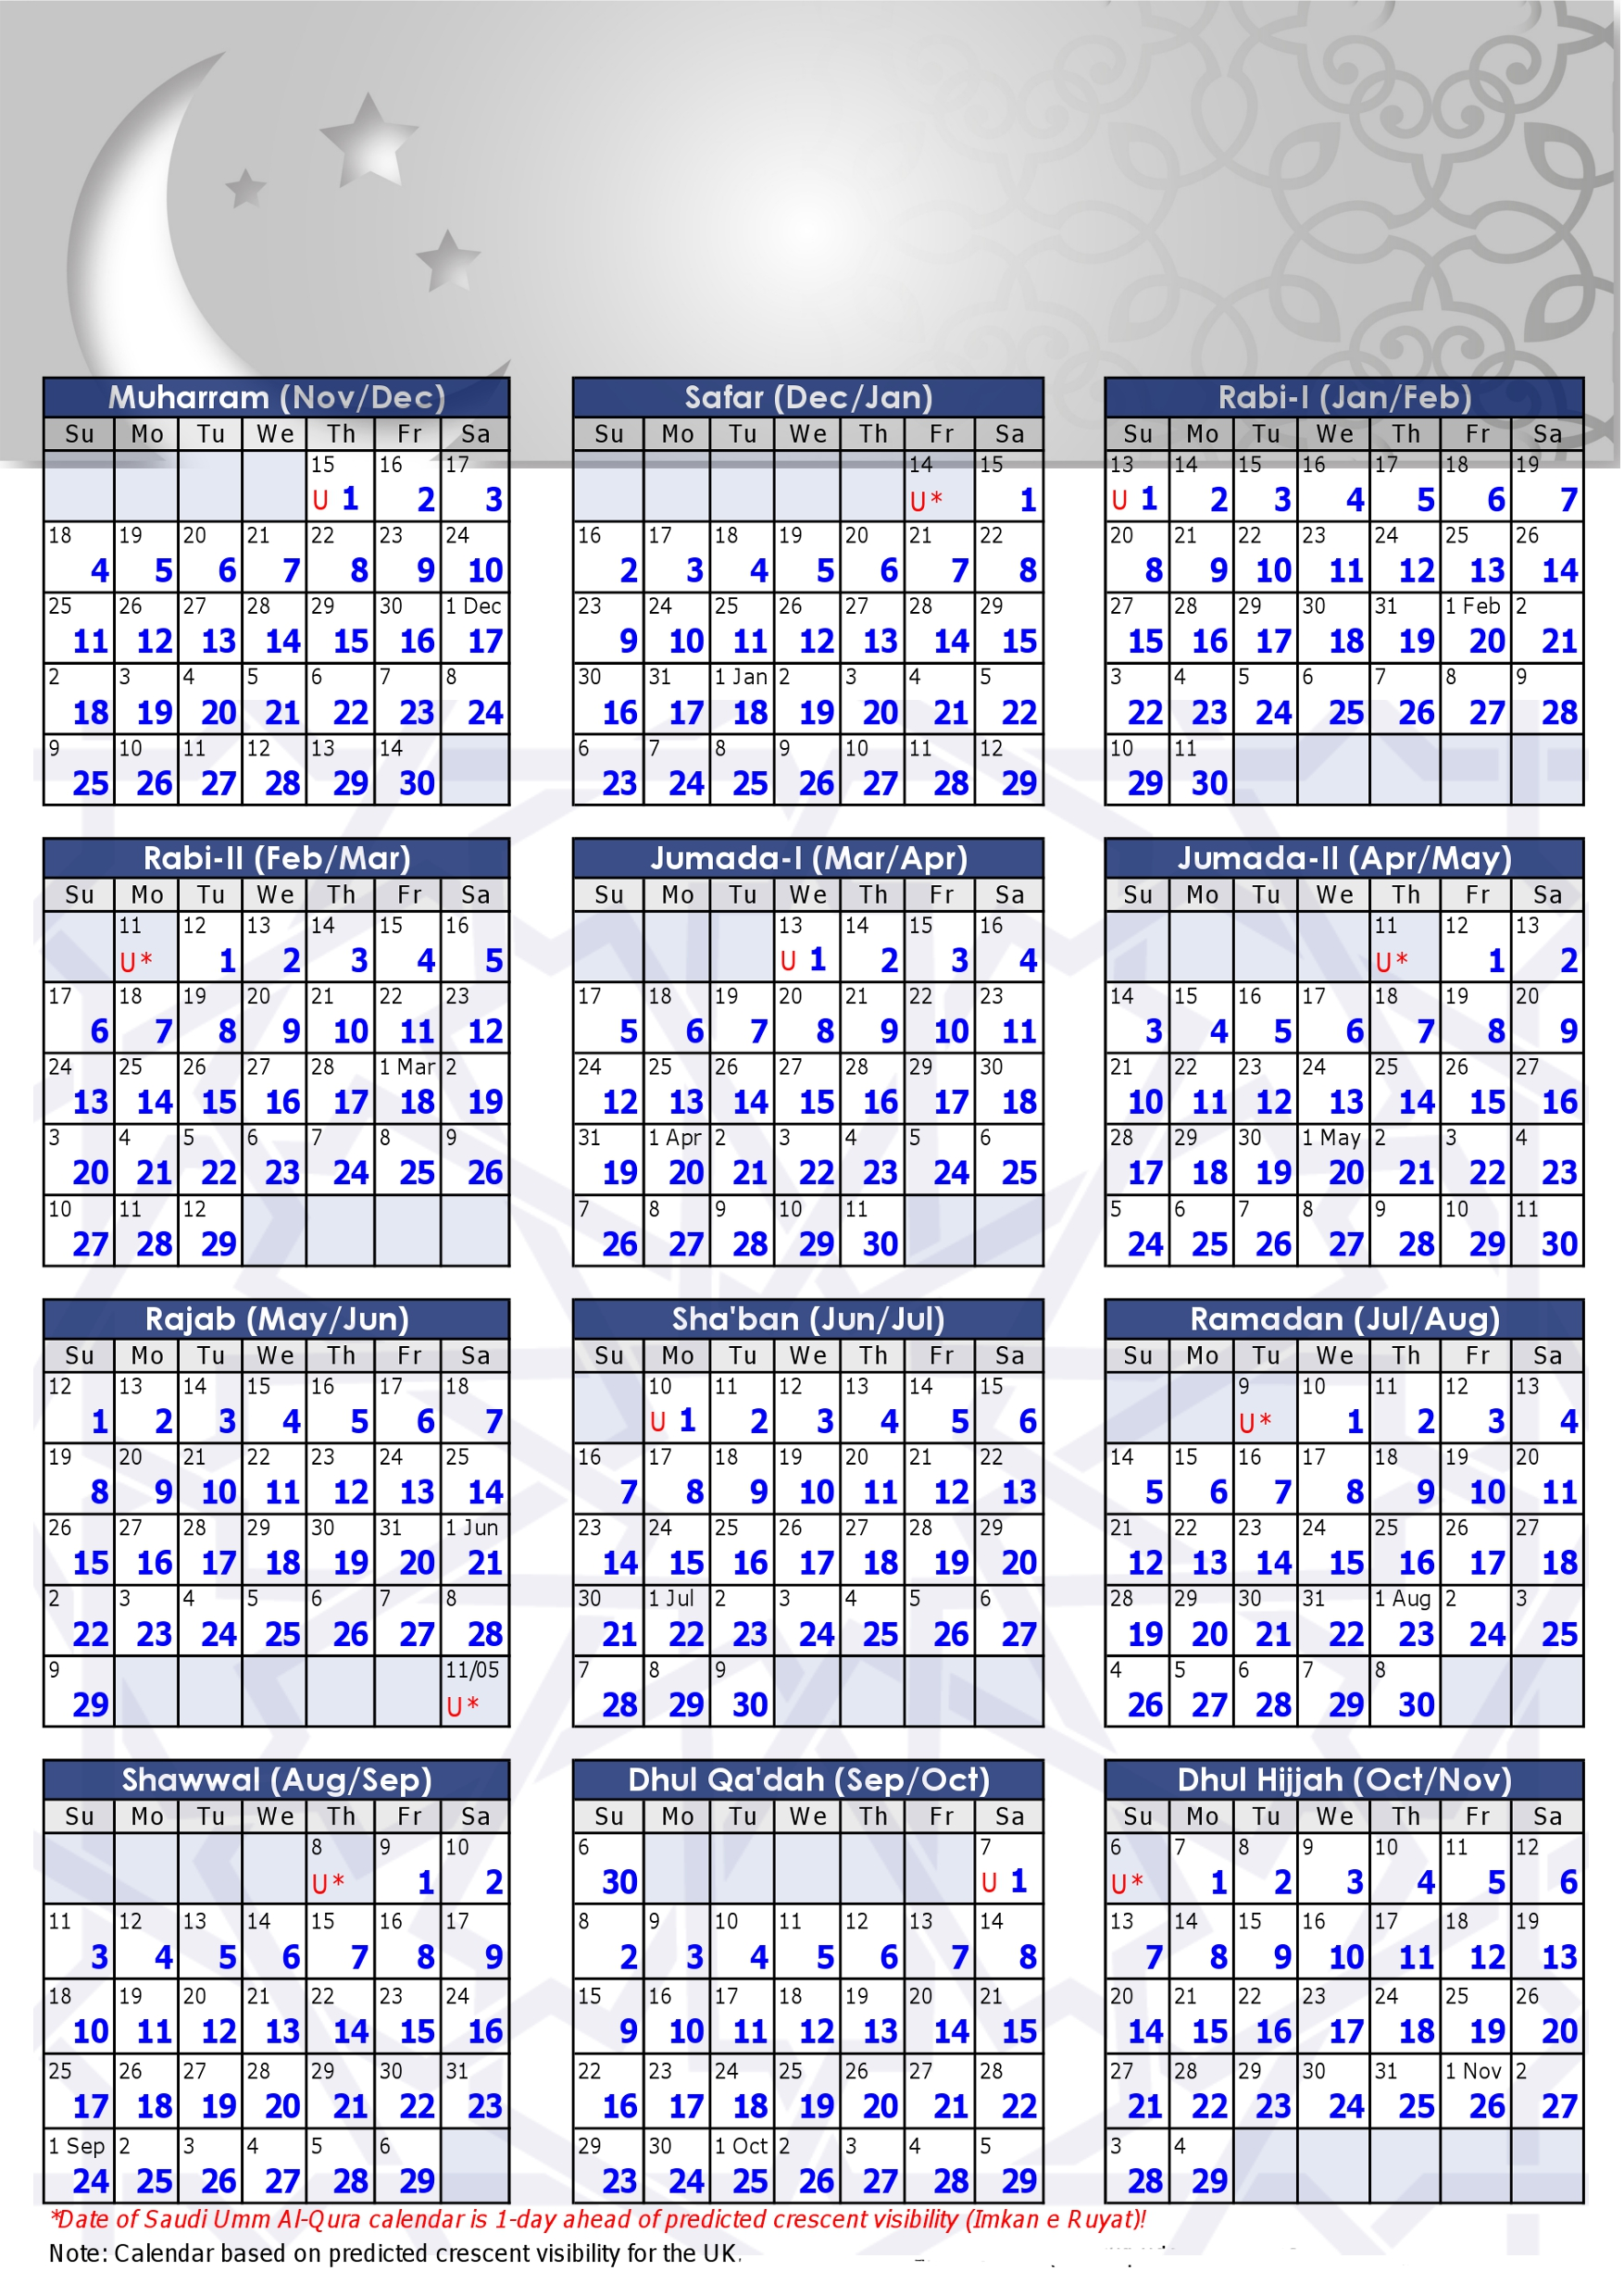 Hijri calendar 1434 | Islamic Calendar 2012/13 Download